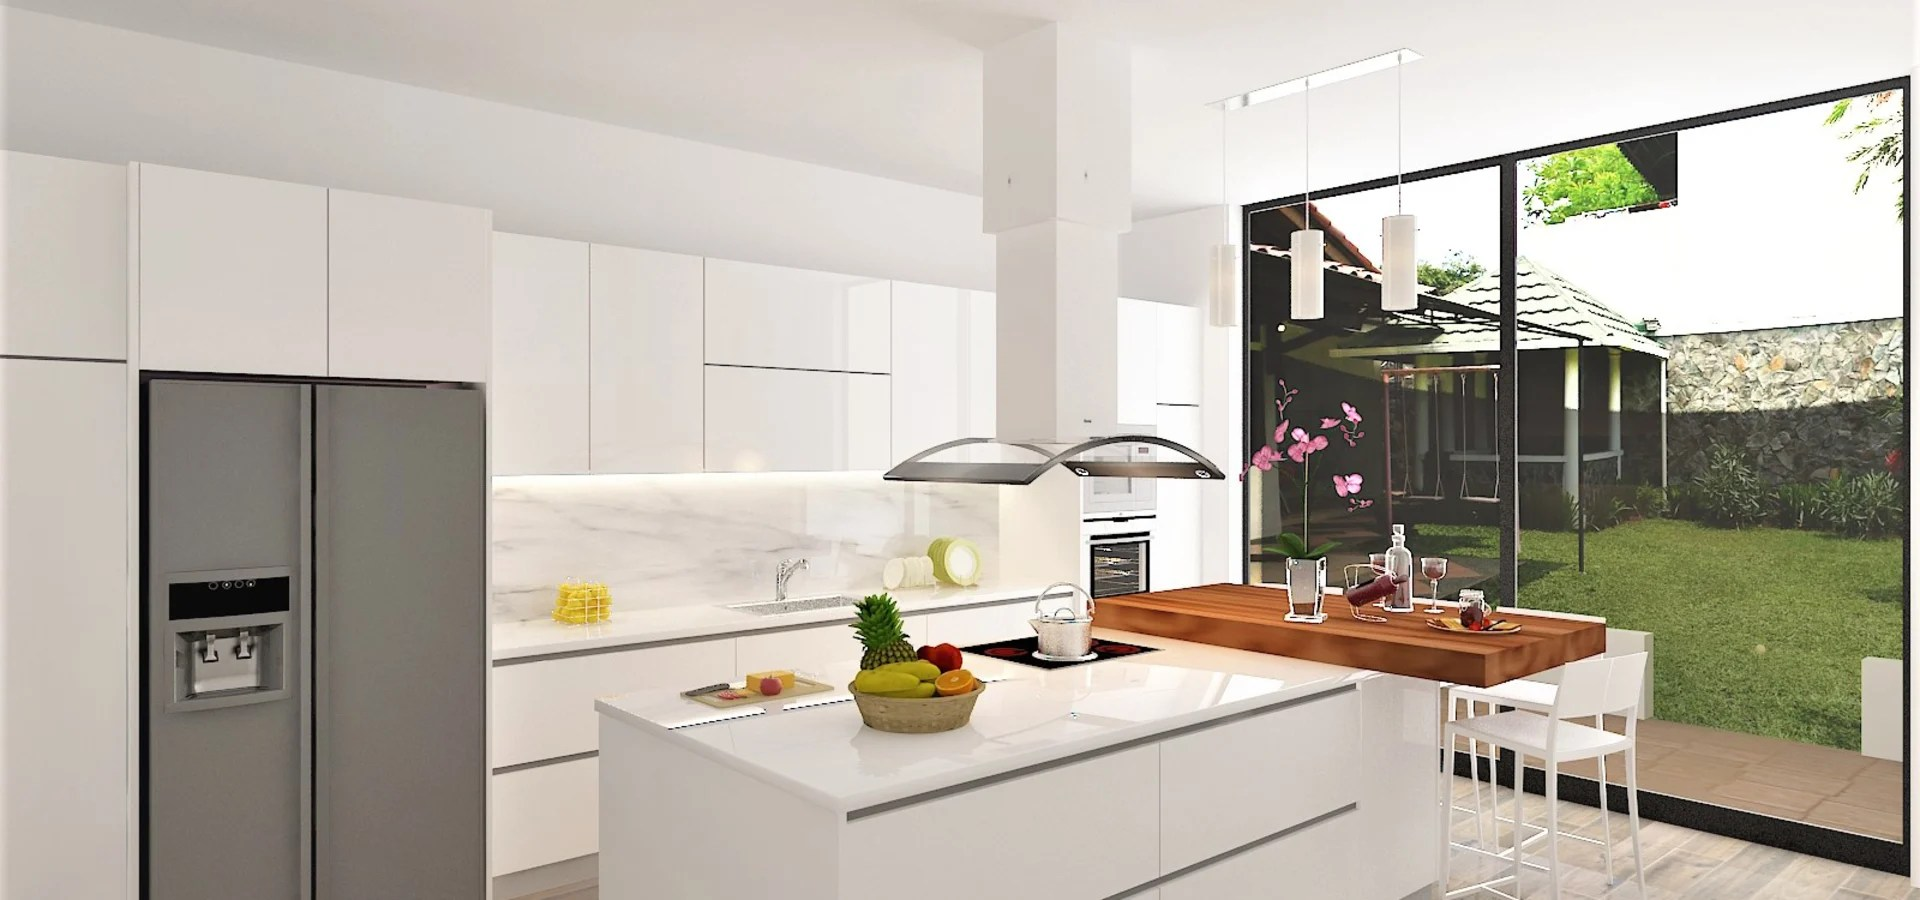 Design Kitchen Set Minimalis Modern Kitchen Set Modern Minimalist By Claire Interior Design Building